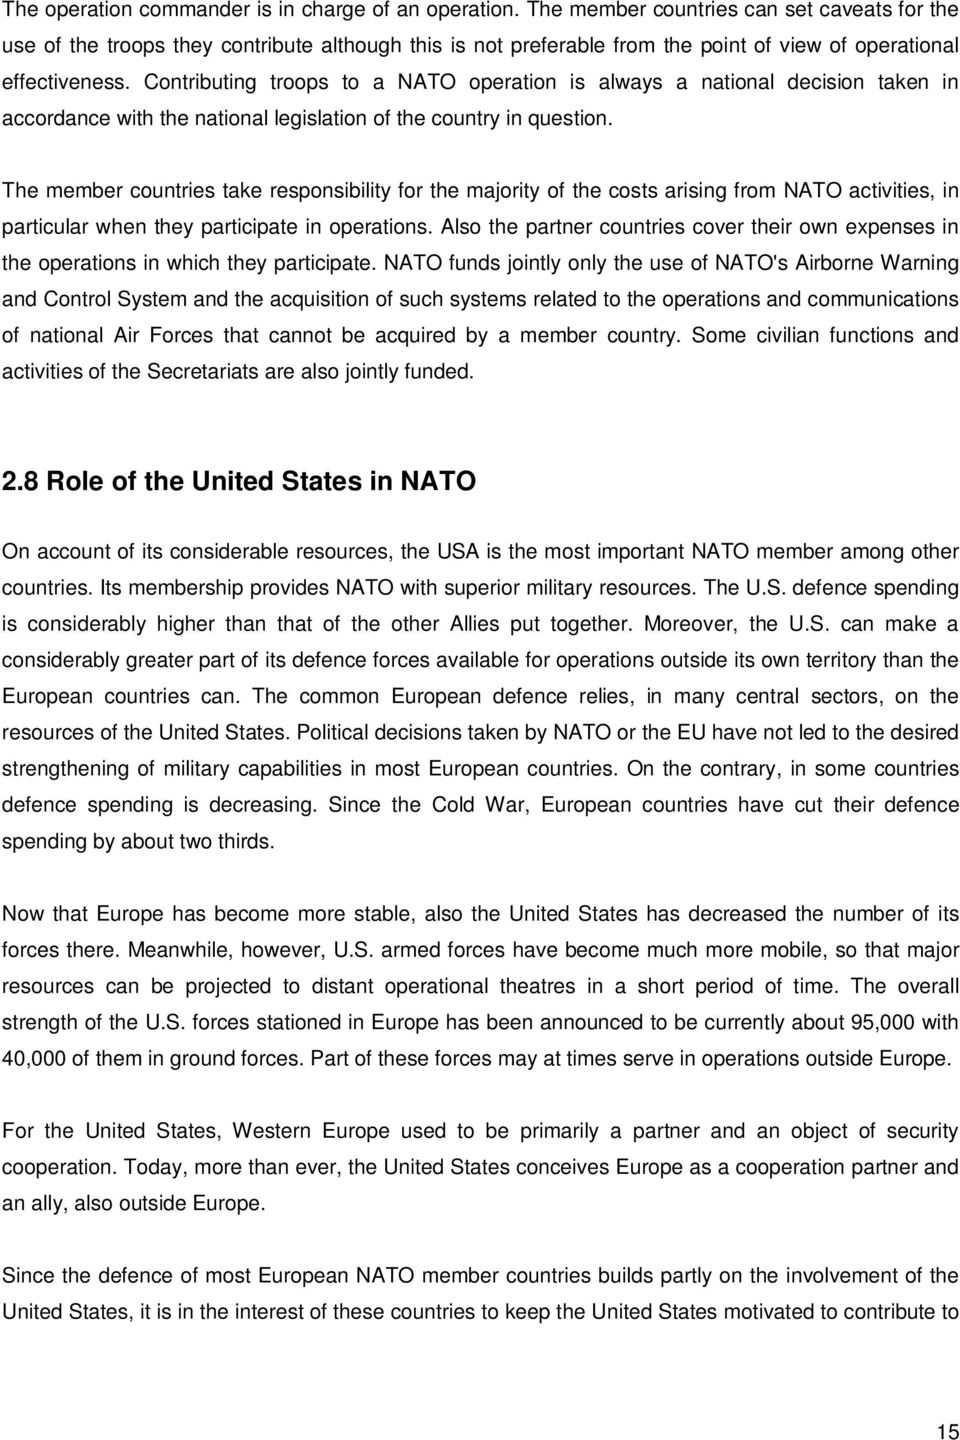 Contributing troops to a NATO operation is always a national decision taken in accordance with the national legislation of the country in question.